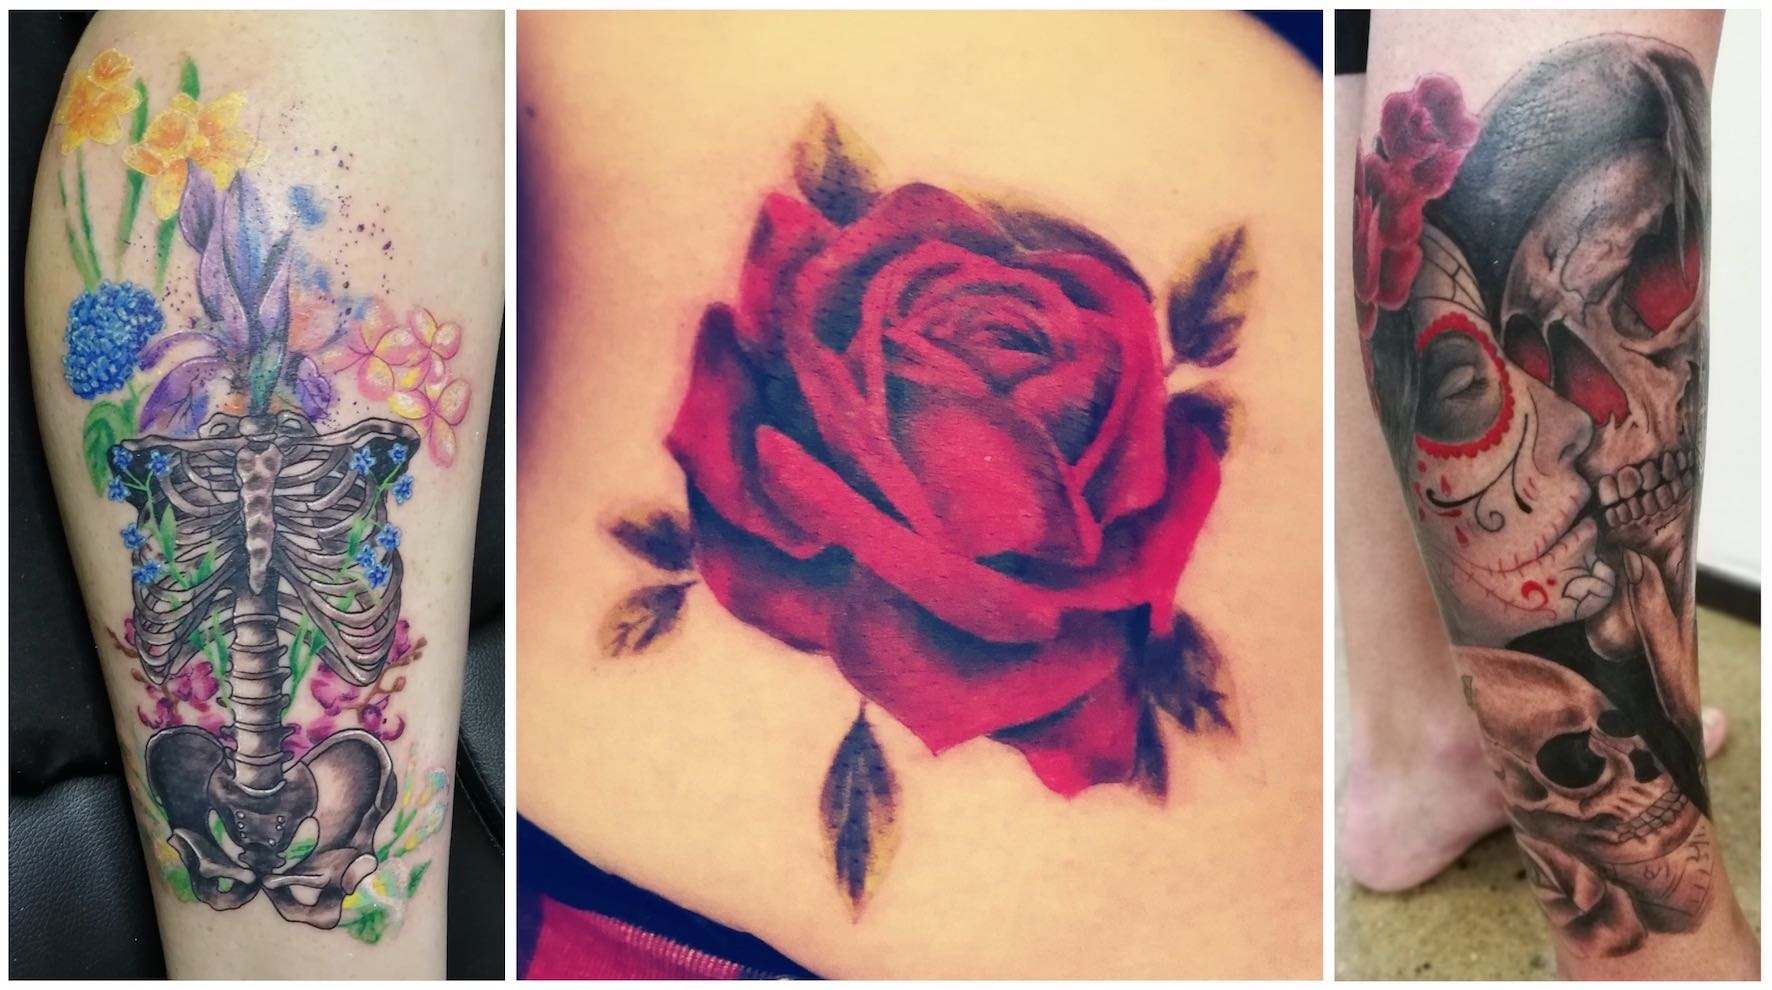 A selection of tattoos by Sheldon Shaw